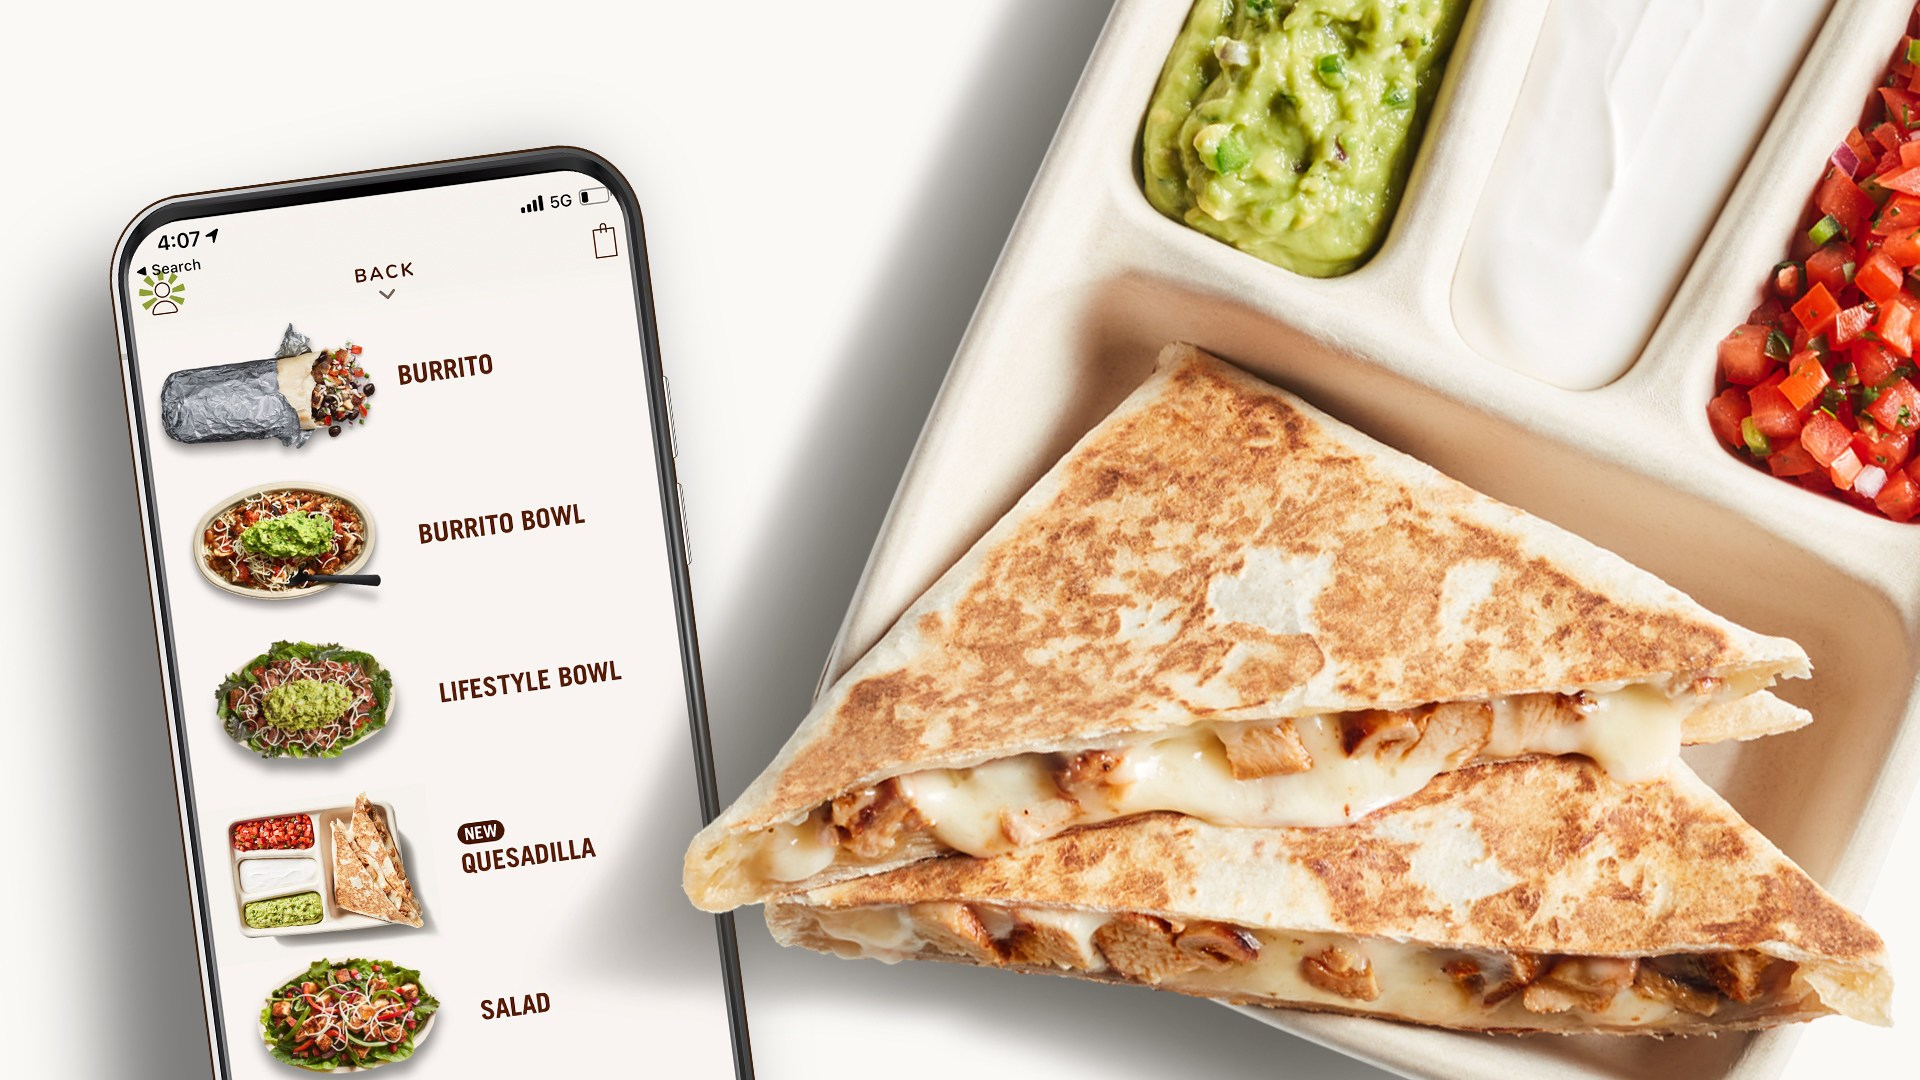 Chipotle unveils new menu item — and it's only available online